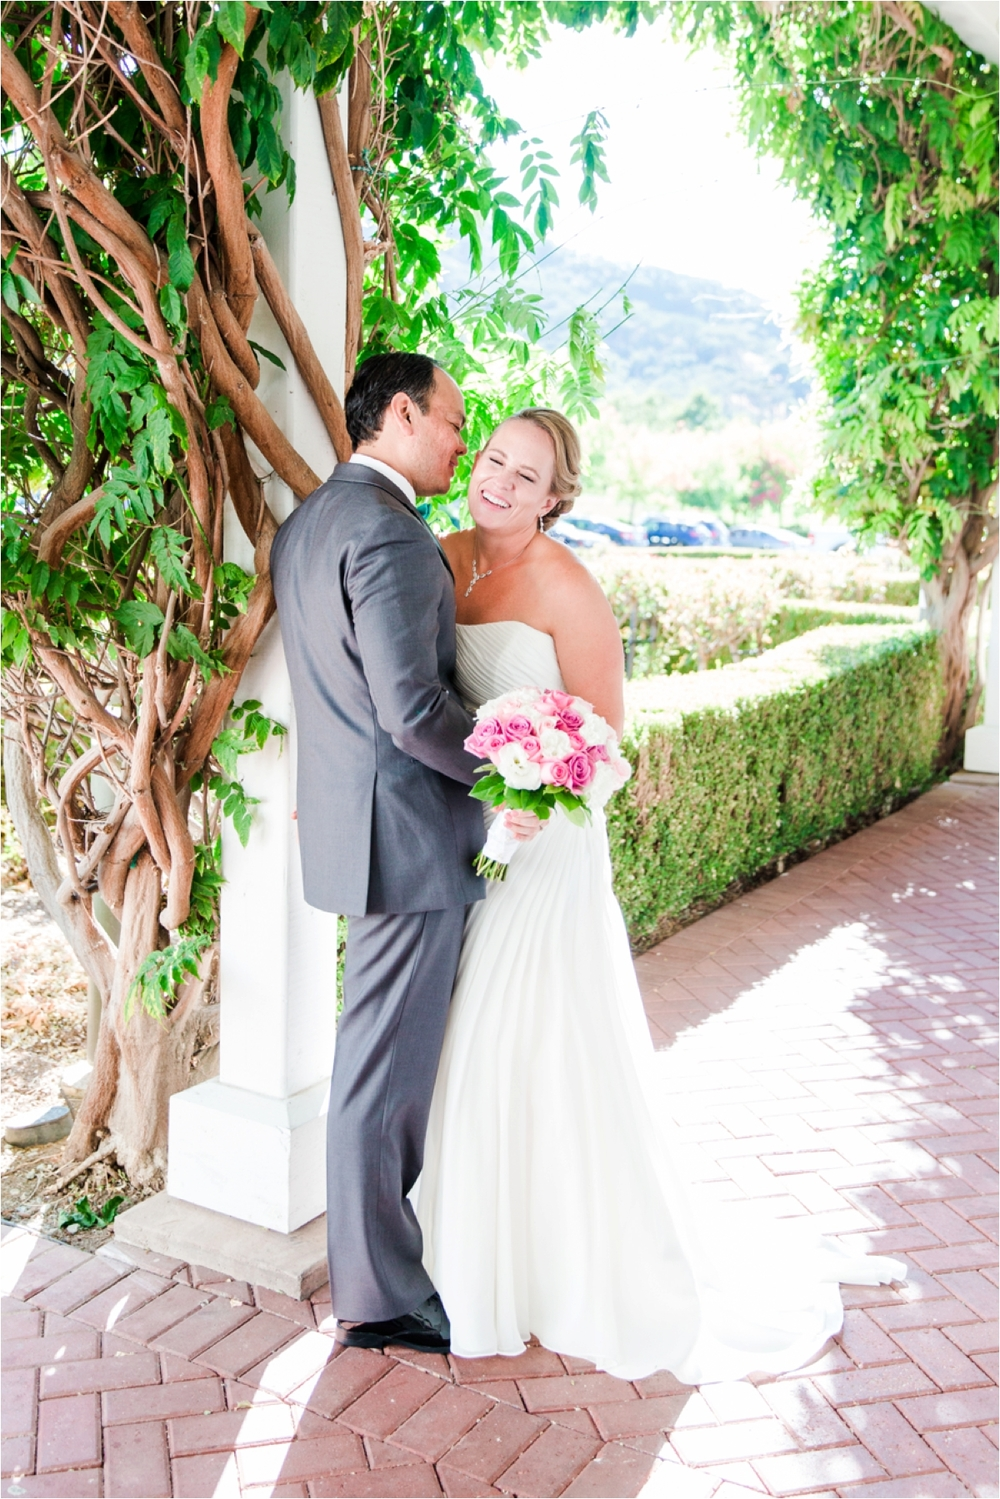 Eagle Ridge Golf Club wedding pictures by Briana Calderon Photography_0415.jpg